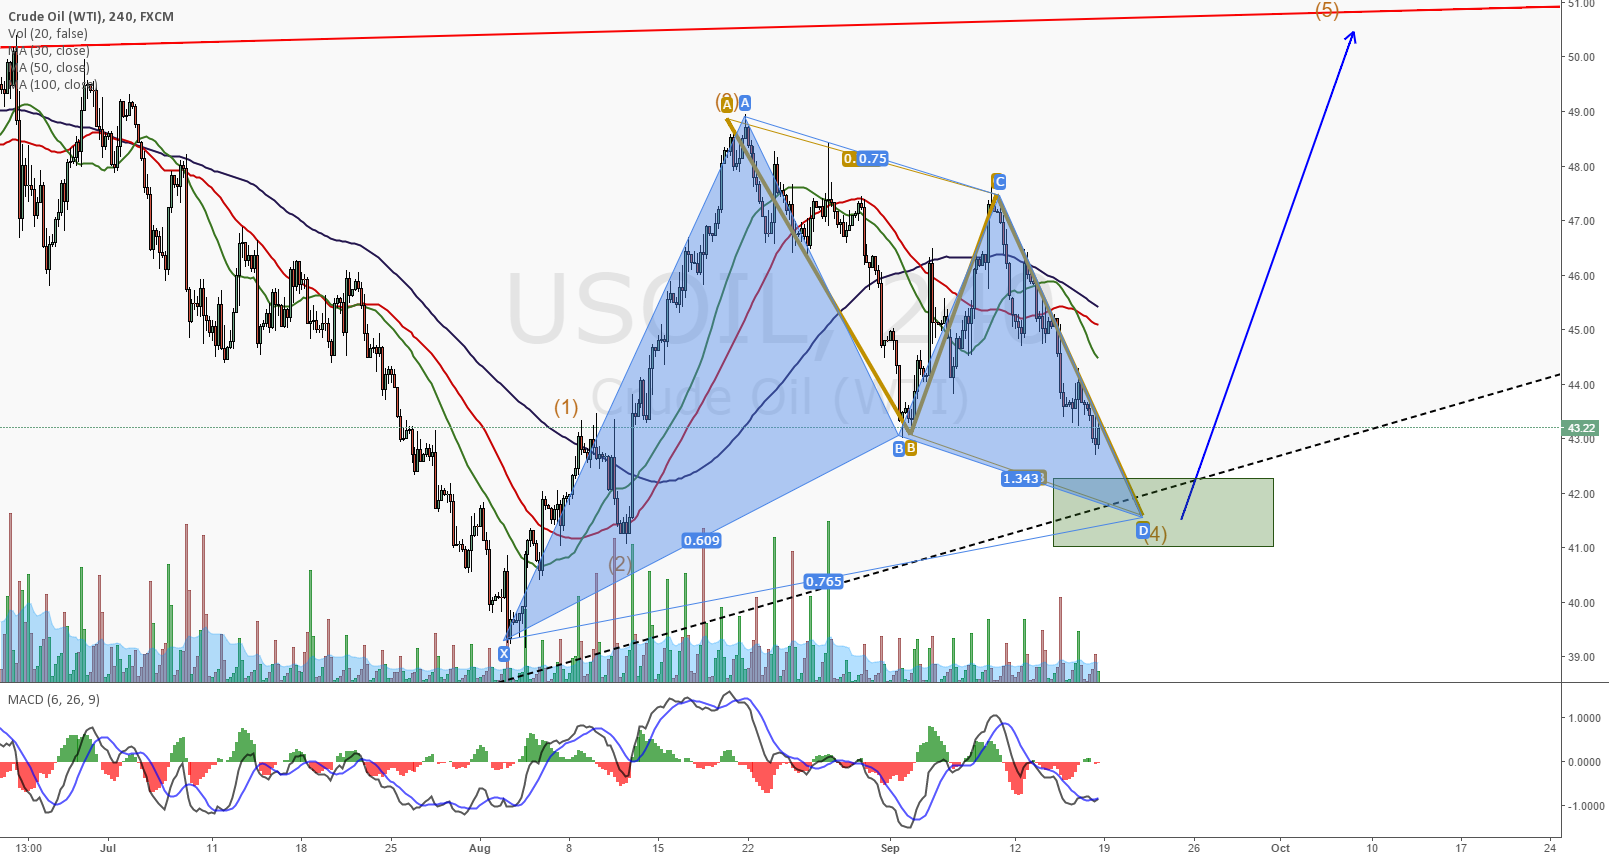 USOIL on a bullish Gartley Formation